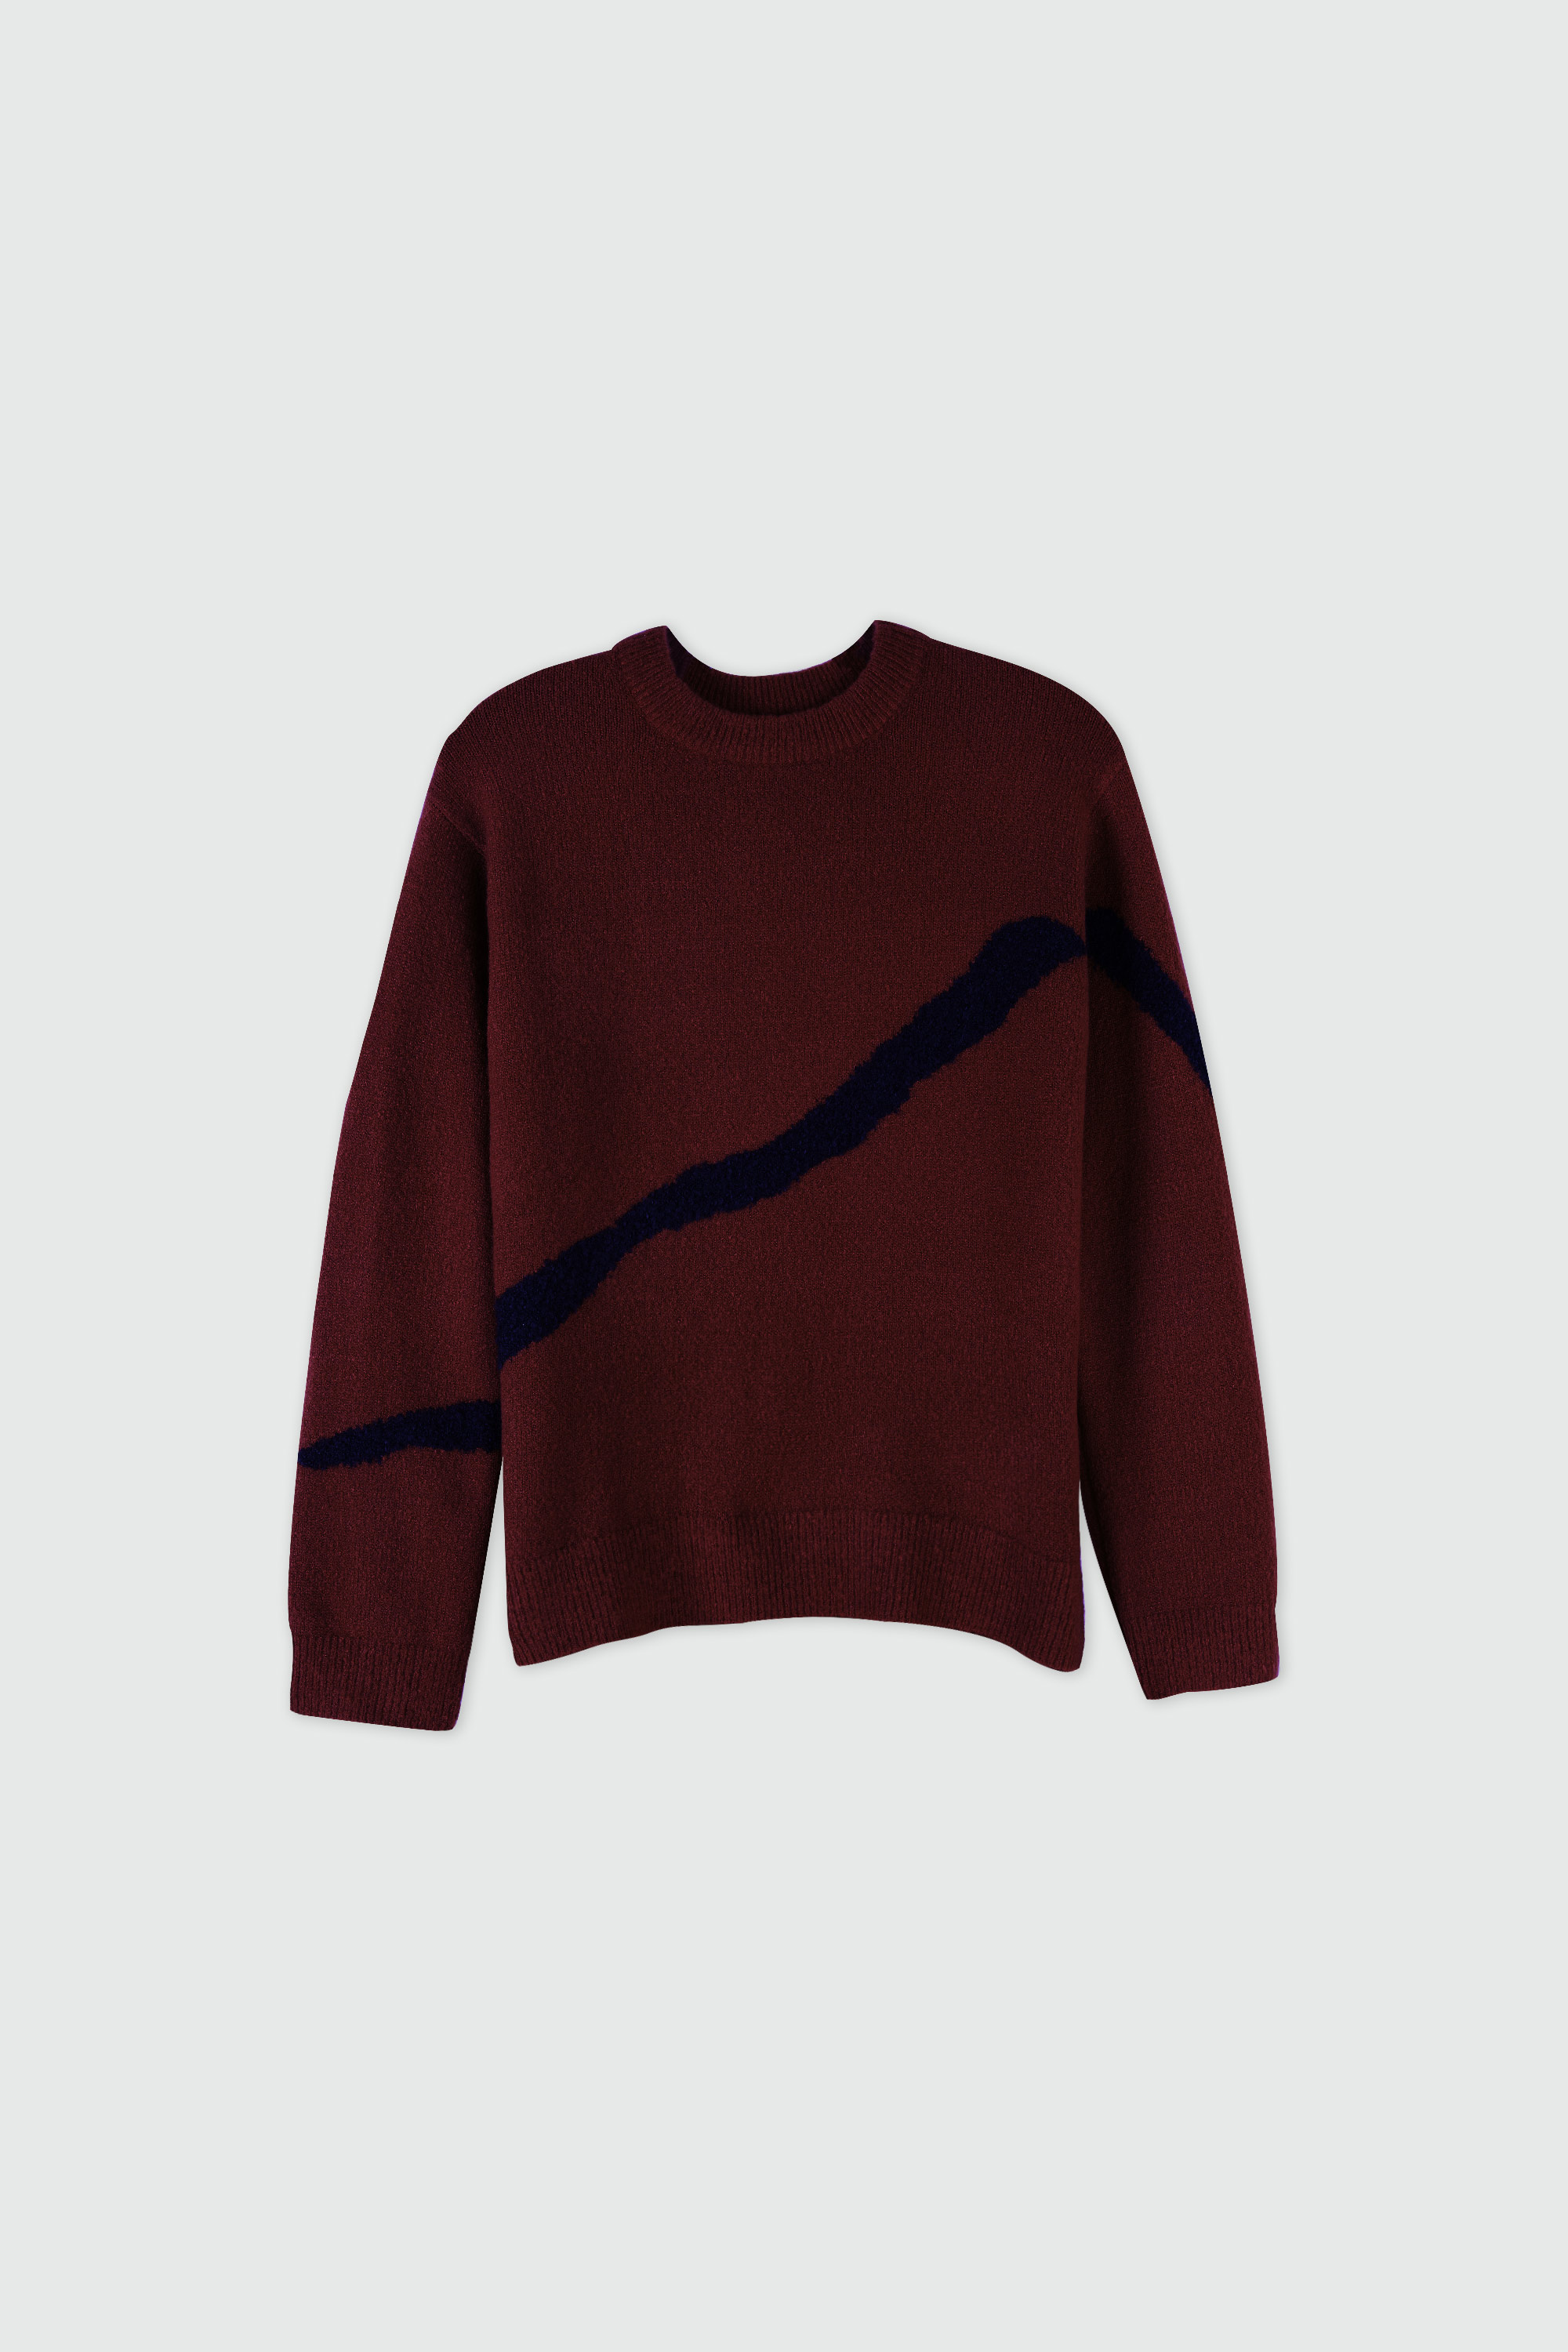 Sweater 2710 Wine 12